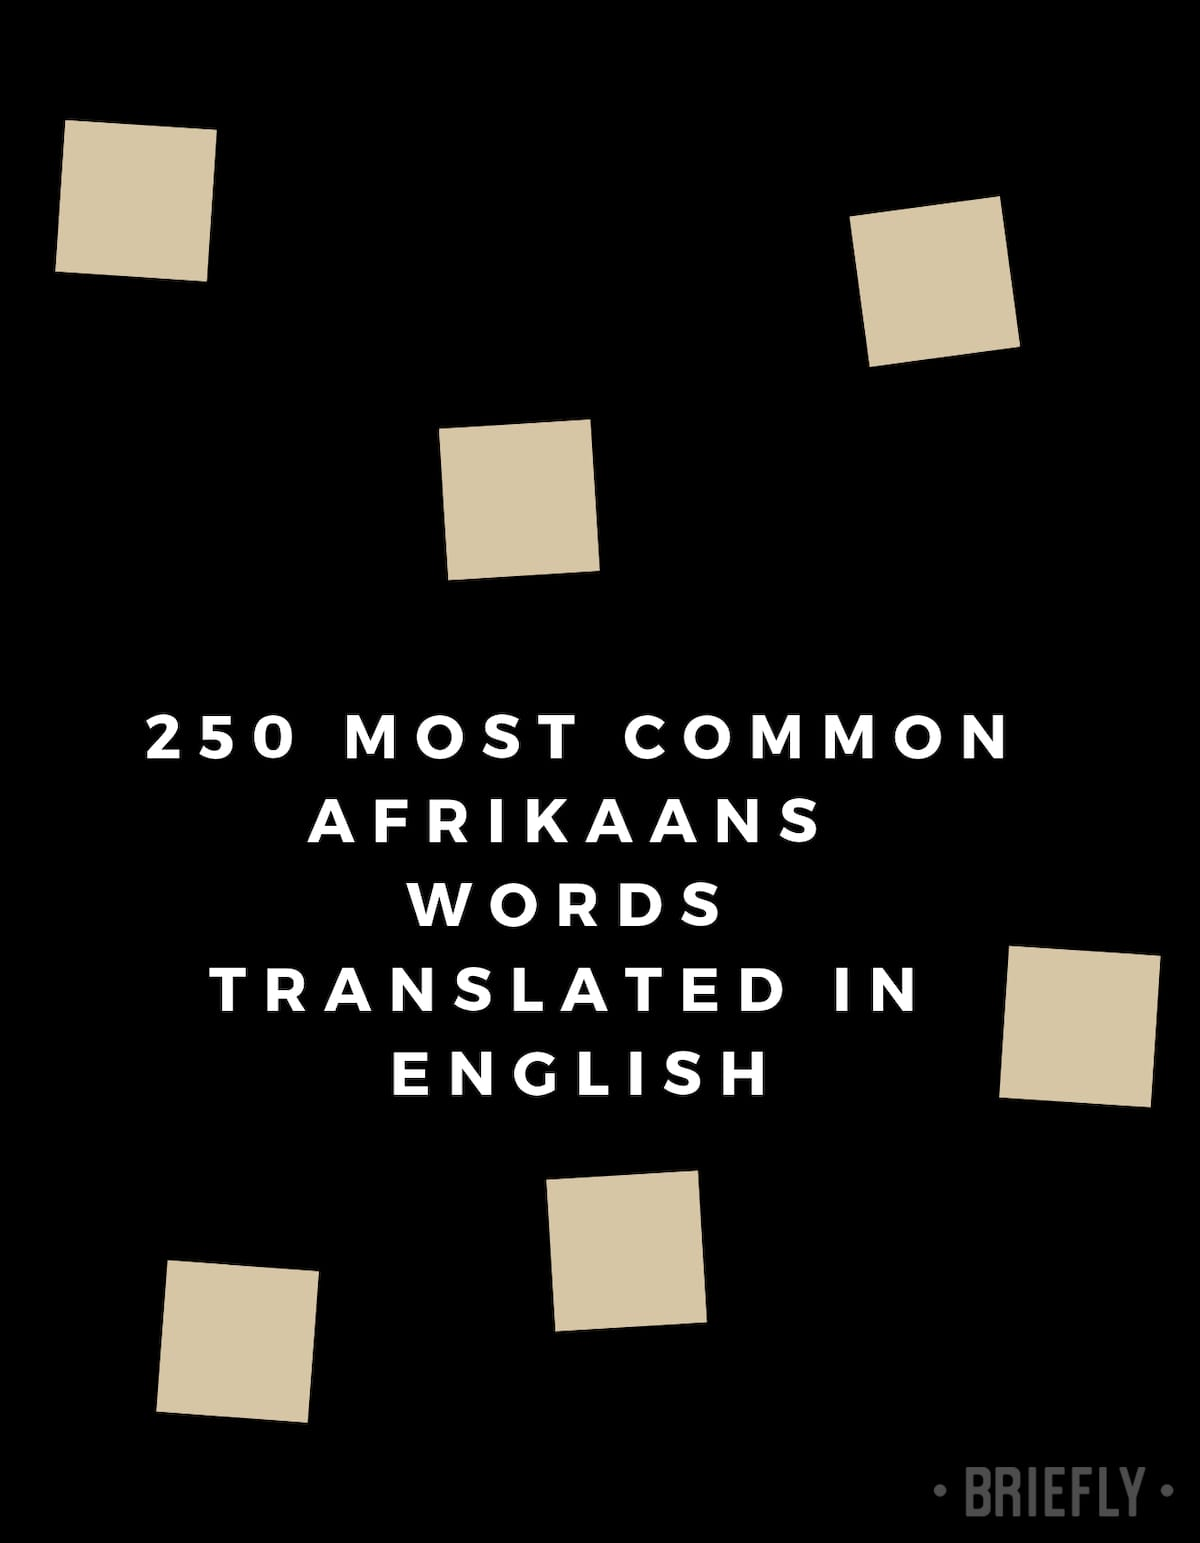 250 most common Afrikaans words translated in English